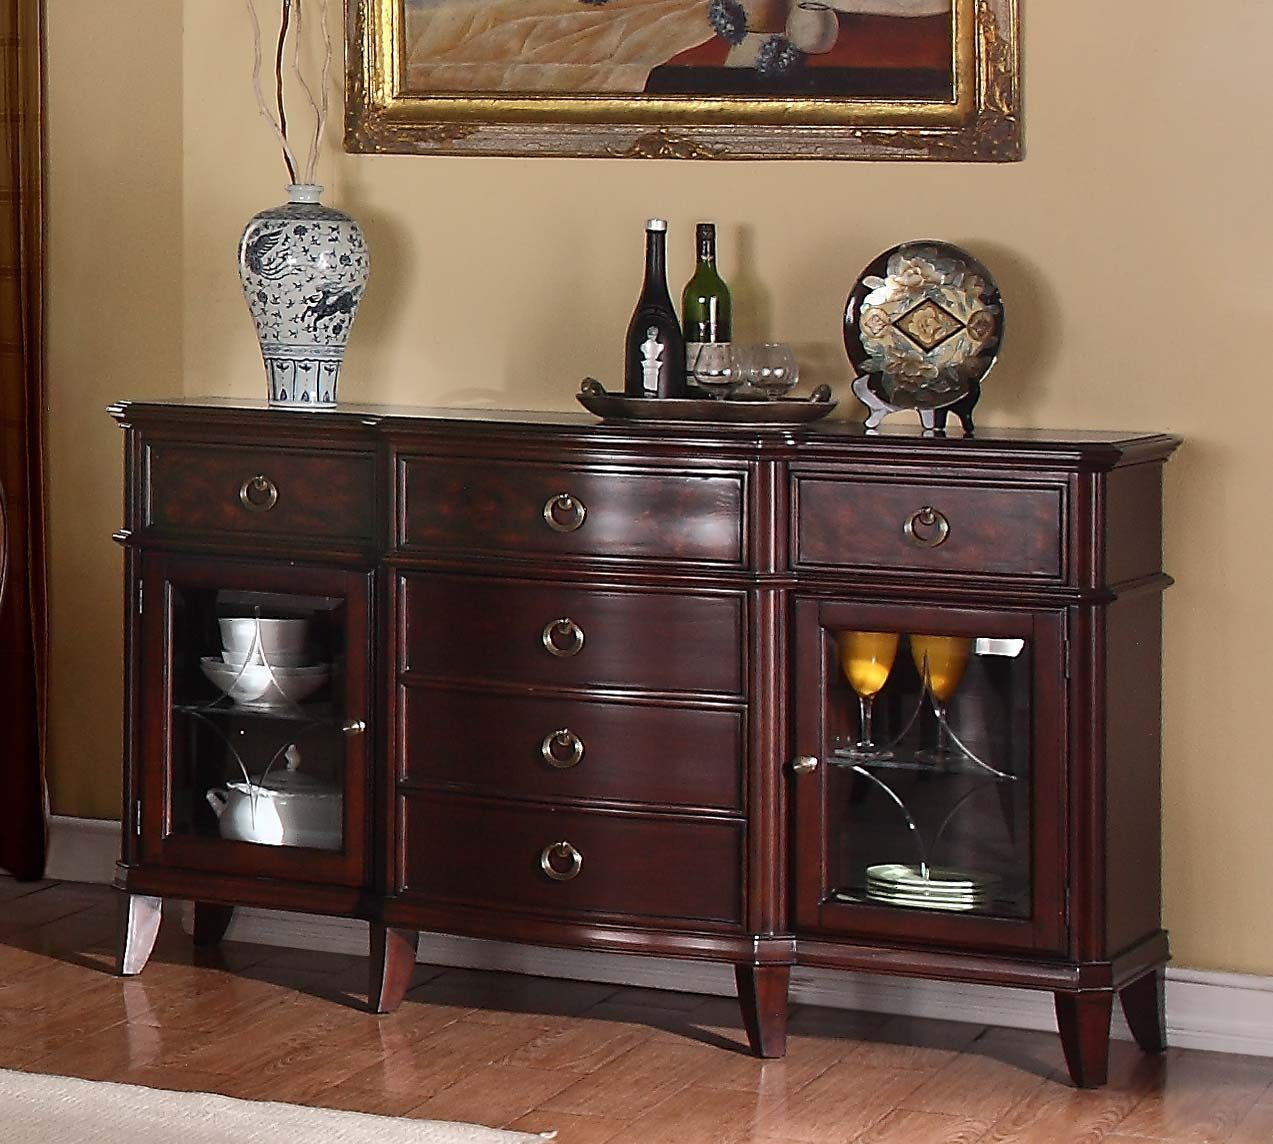 Homelegance Agatha Buffet Server – Rich Cherry | Furniture With Regard To Chalus Sideboards (View 15 of 30)